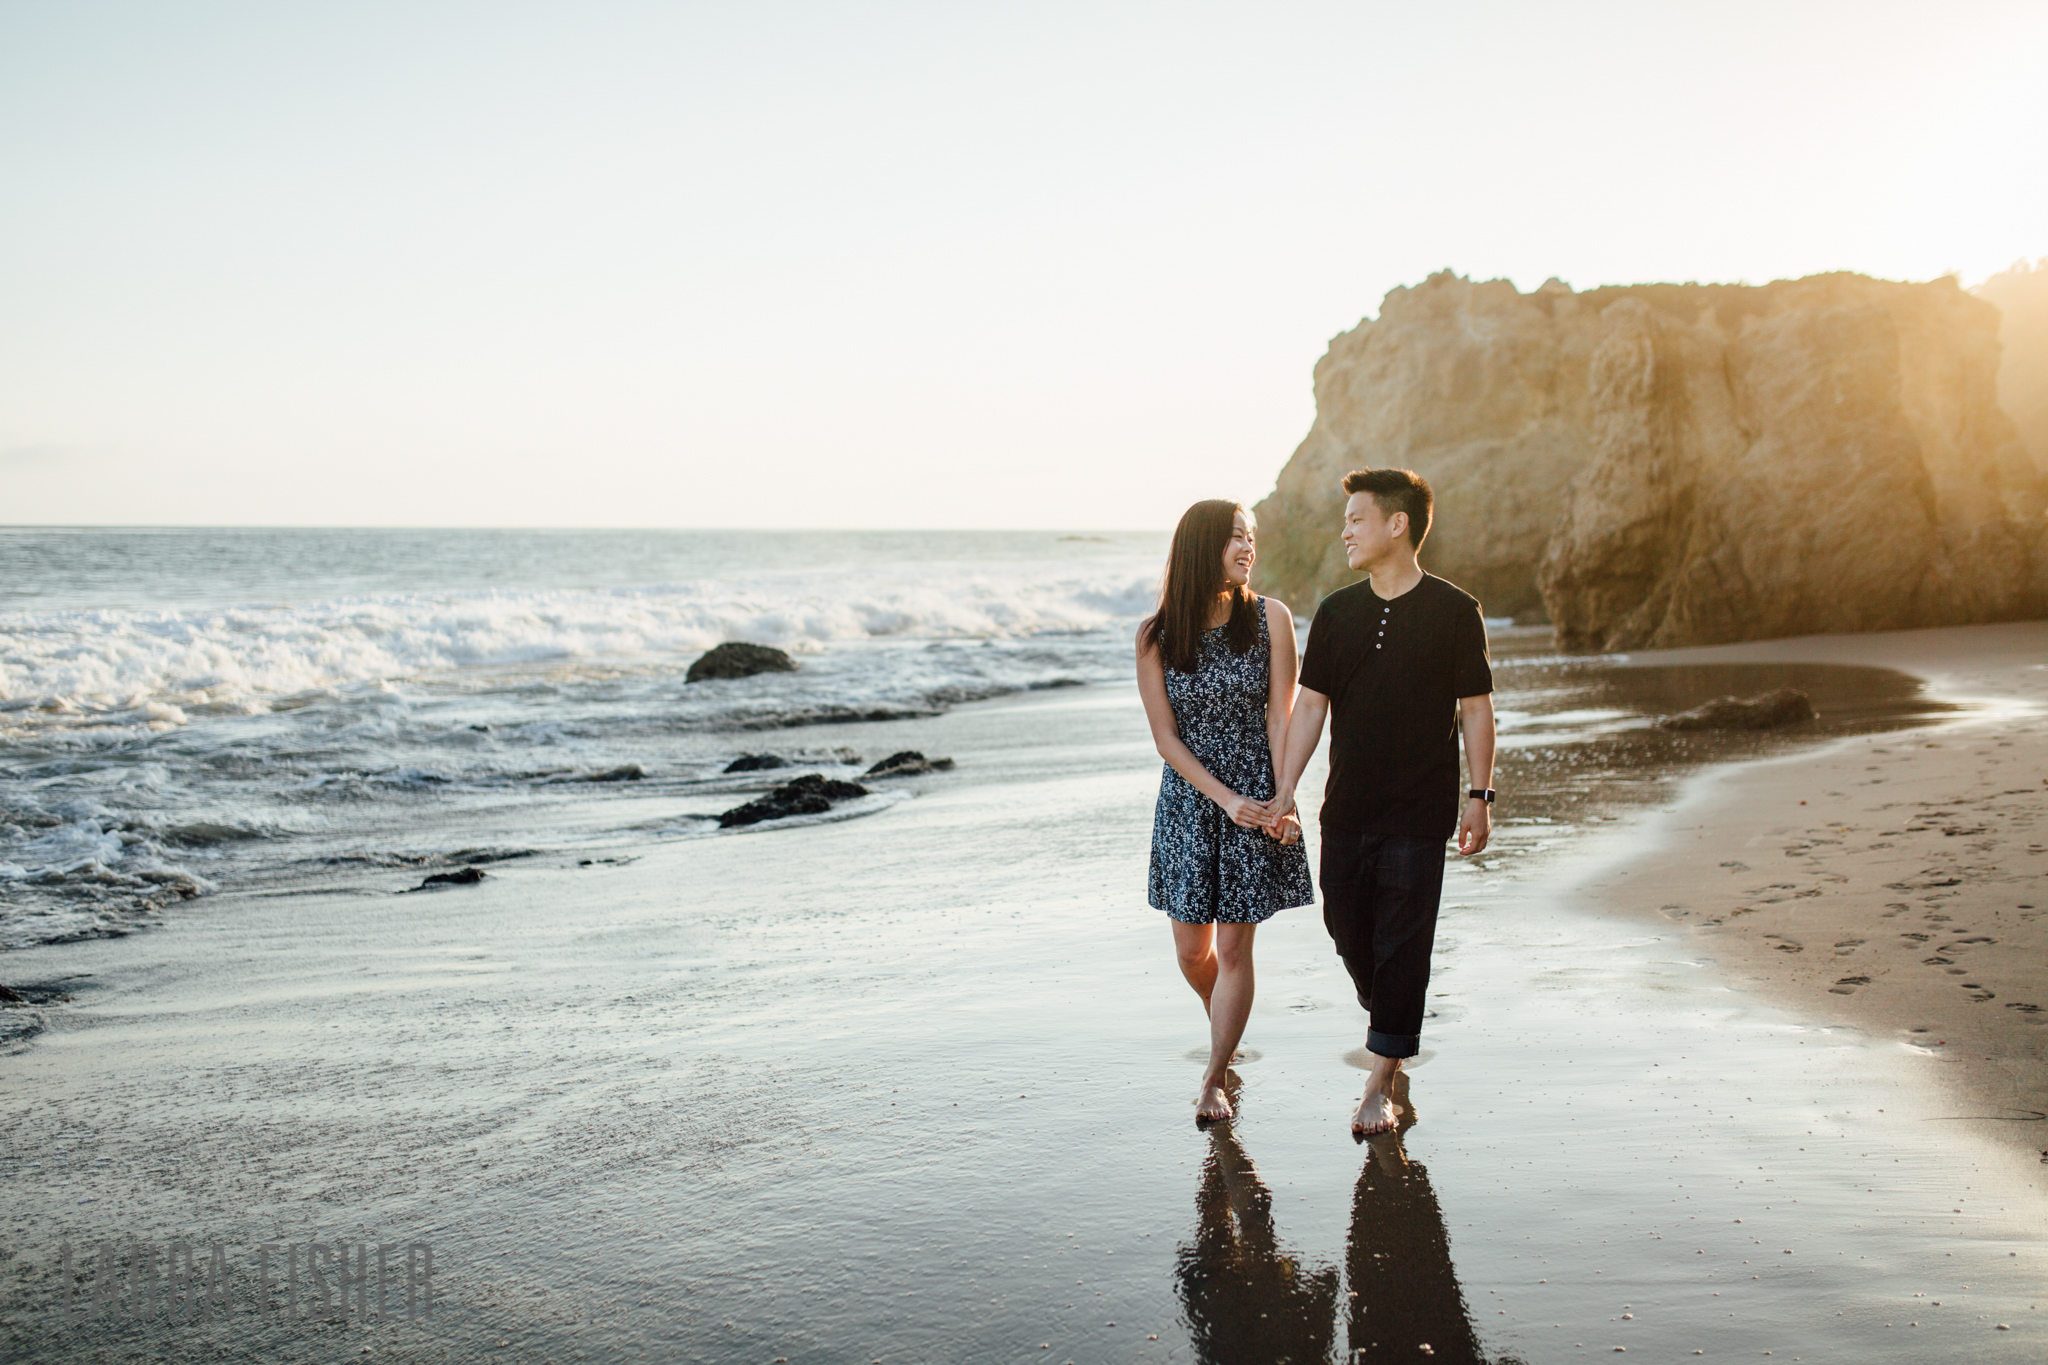 malibu-california-wedding-el-matador-beach-laura-fisher-photography-0062.jpg